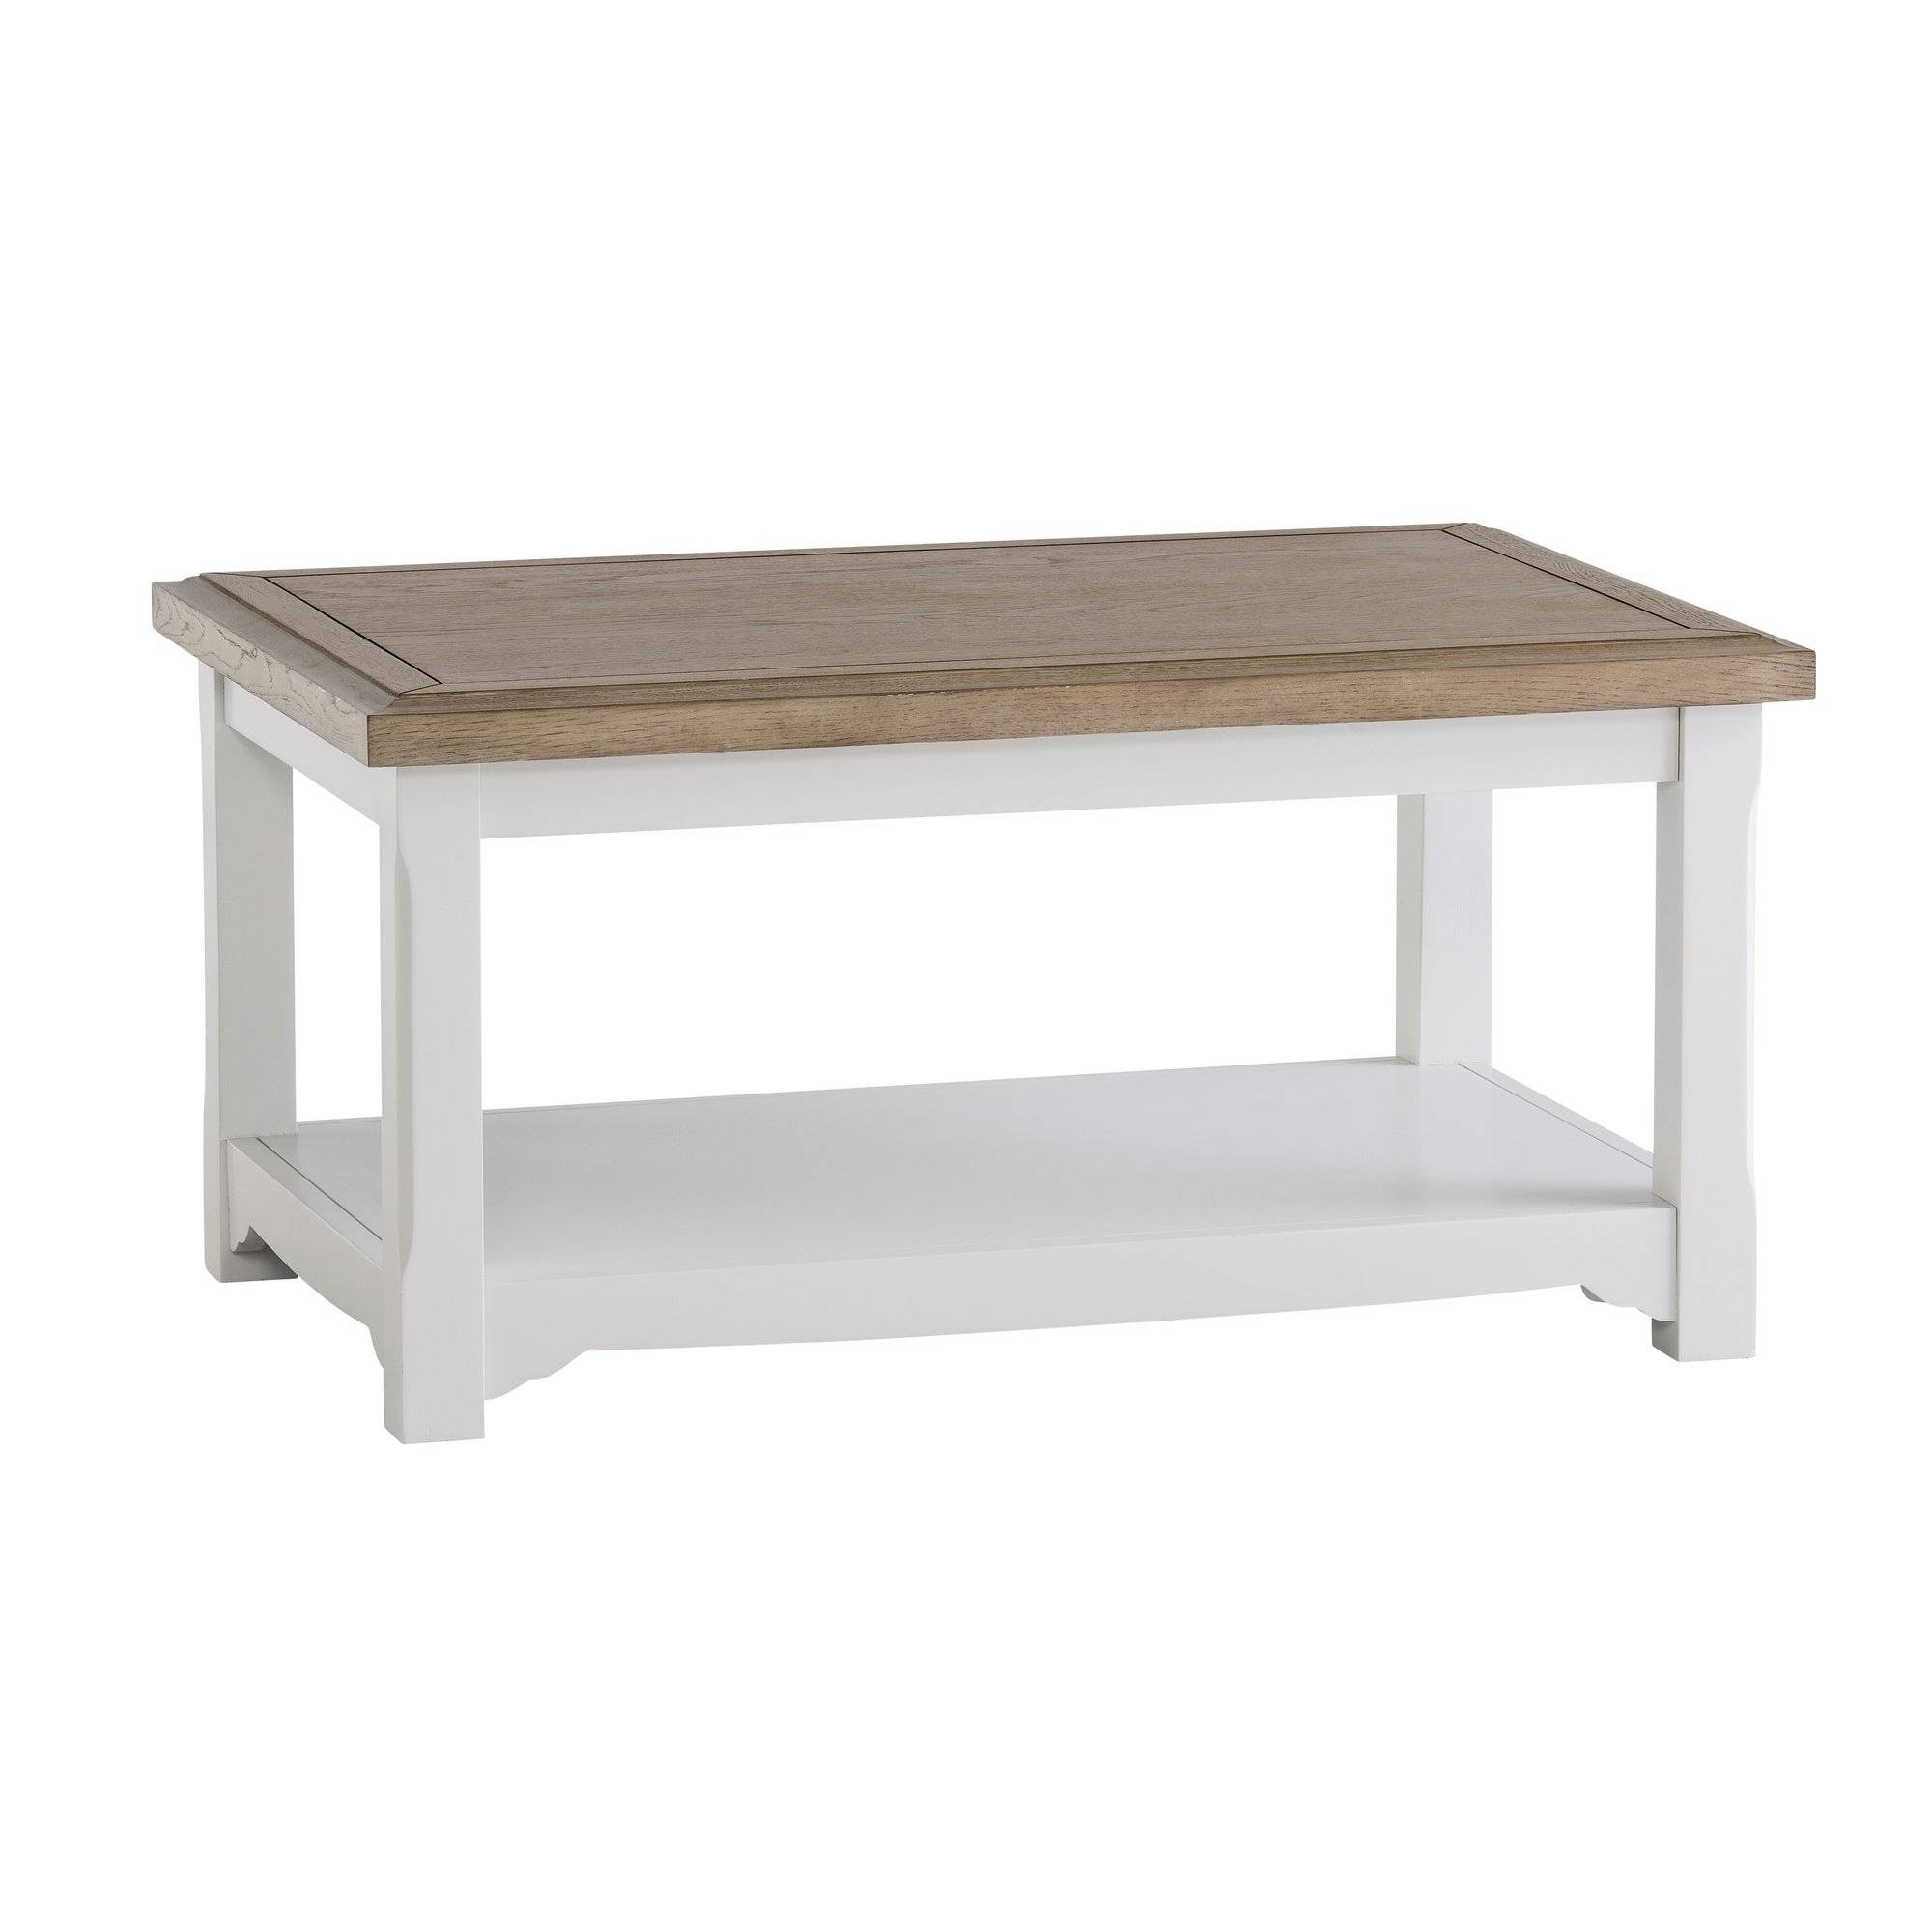 All Home Bordeaux Coffee Table | Wayfair.co.uk pertaining to Bordeaux Coffee Tables (Image 1 of 30)